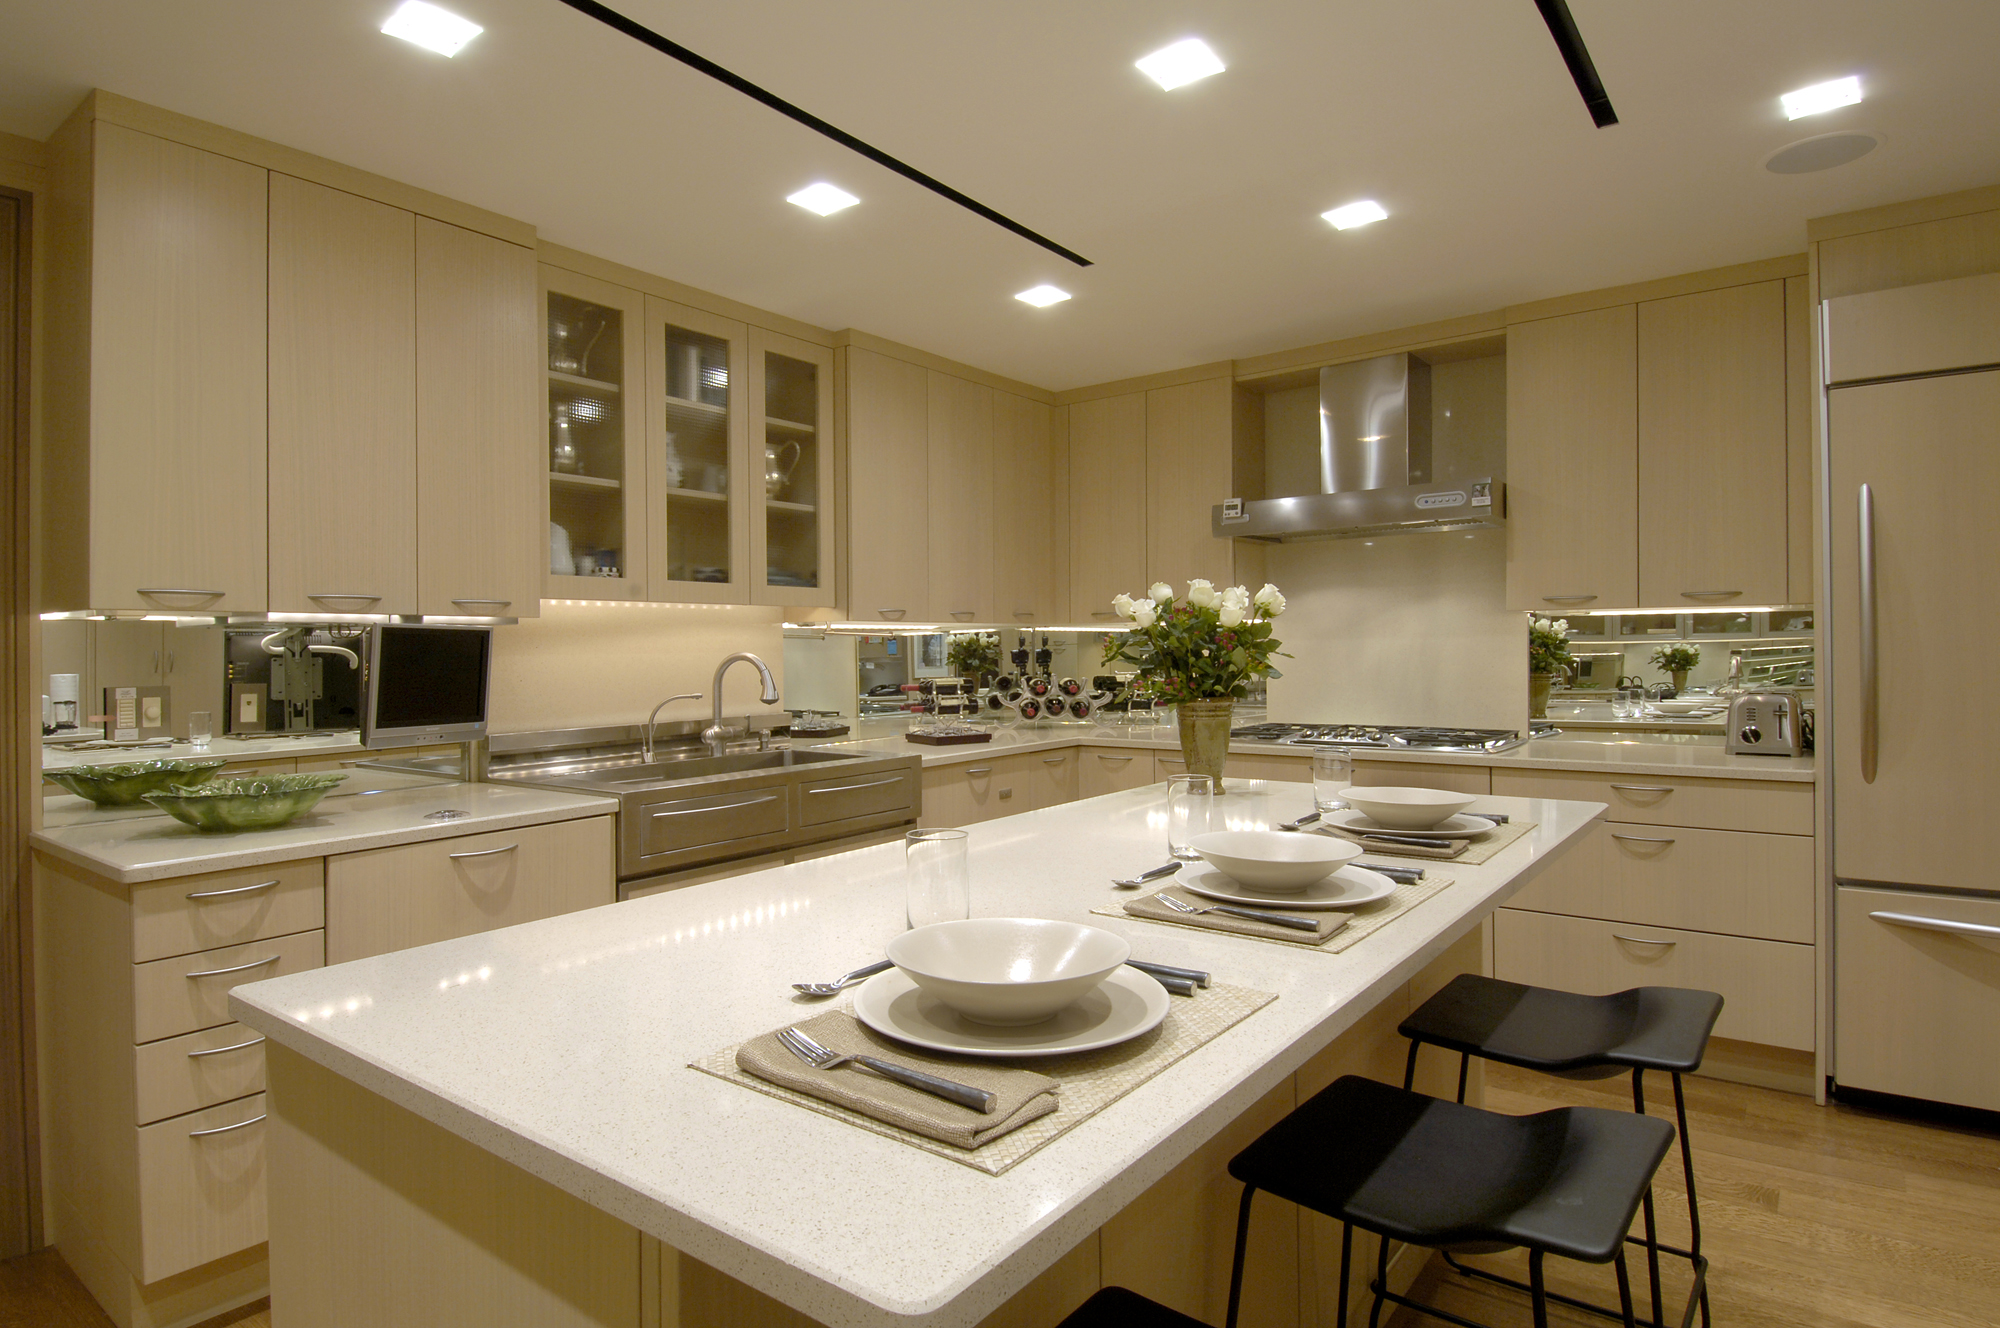 Award winning condominium penthouse renovation in Kitchen design remodel dc